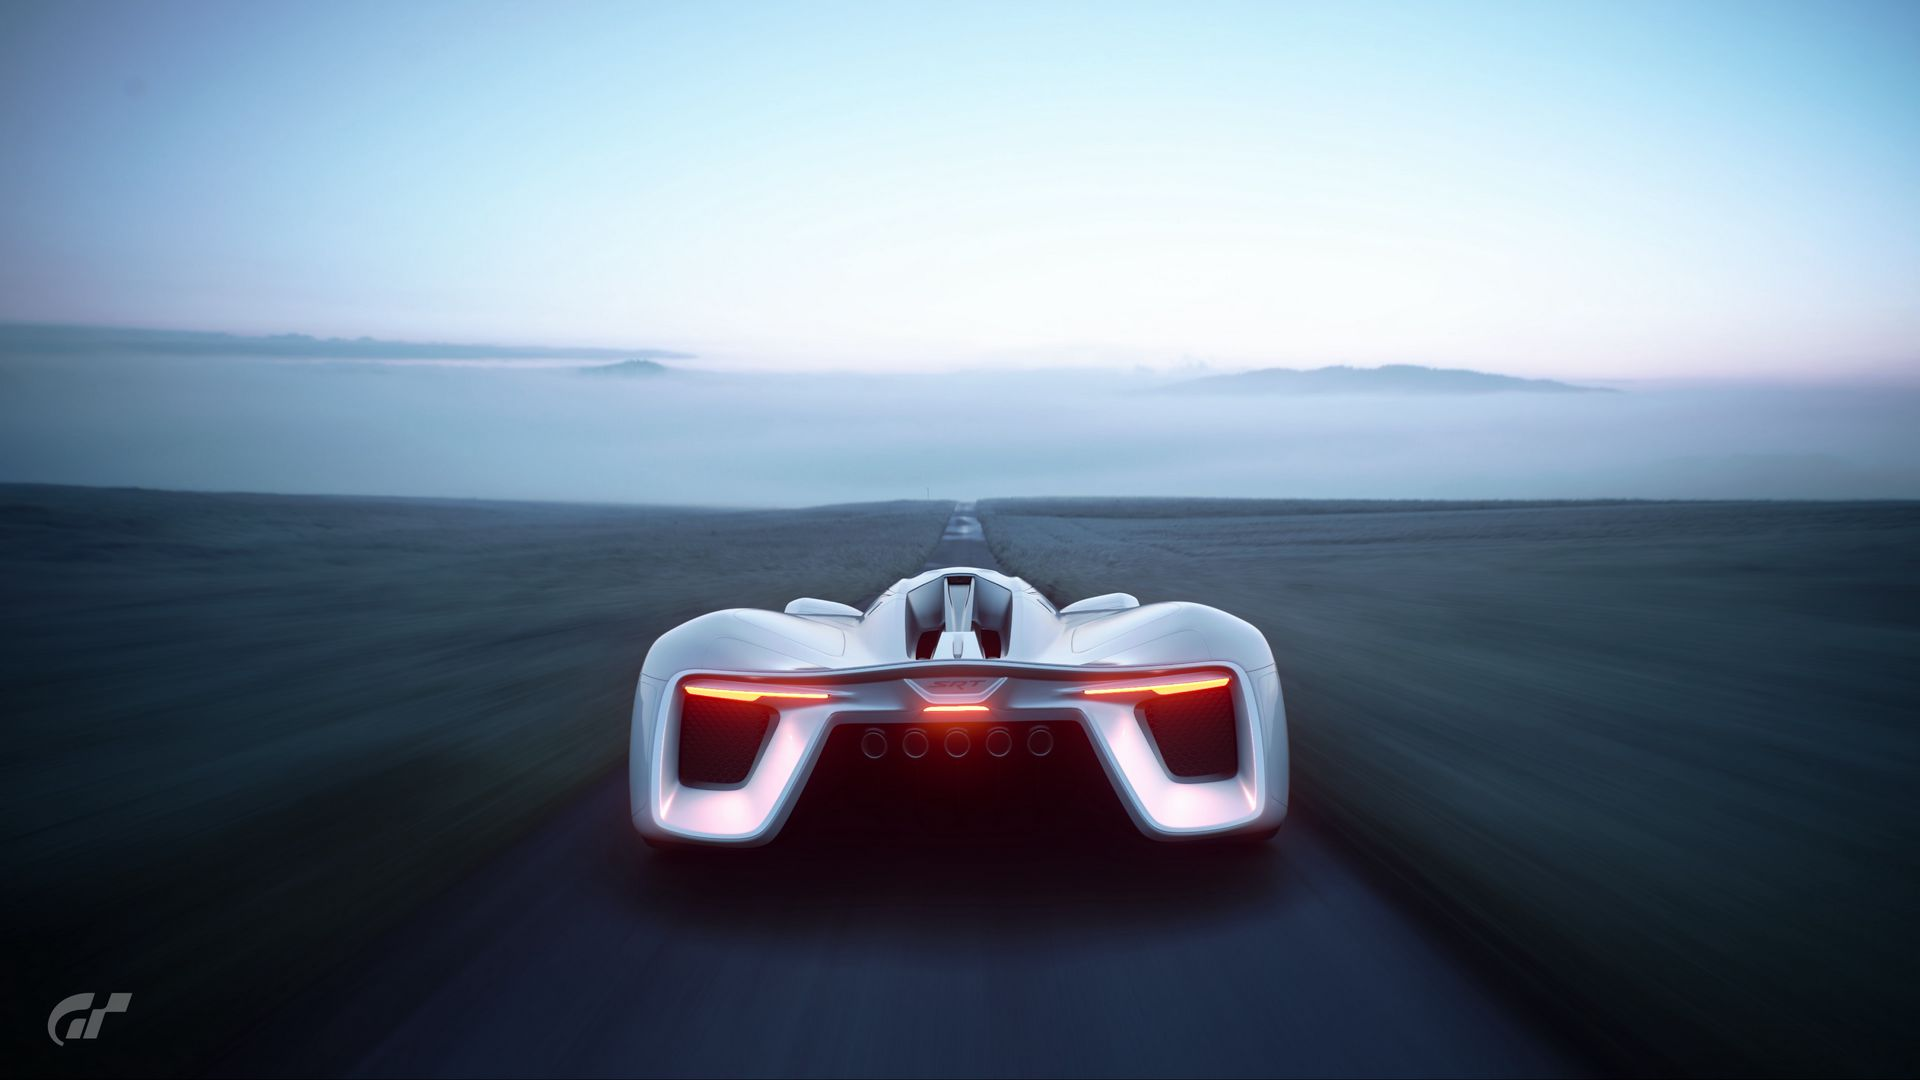 Supercar, Sports, Car, Rear View Wallpapers Free Download